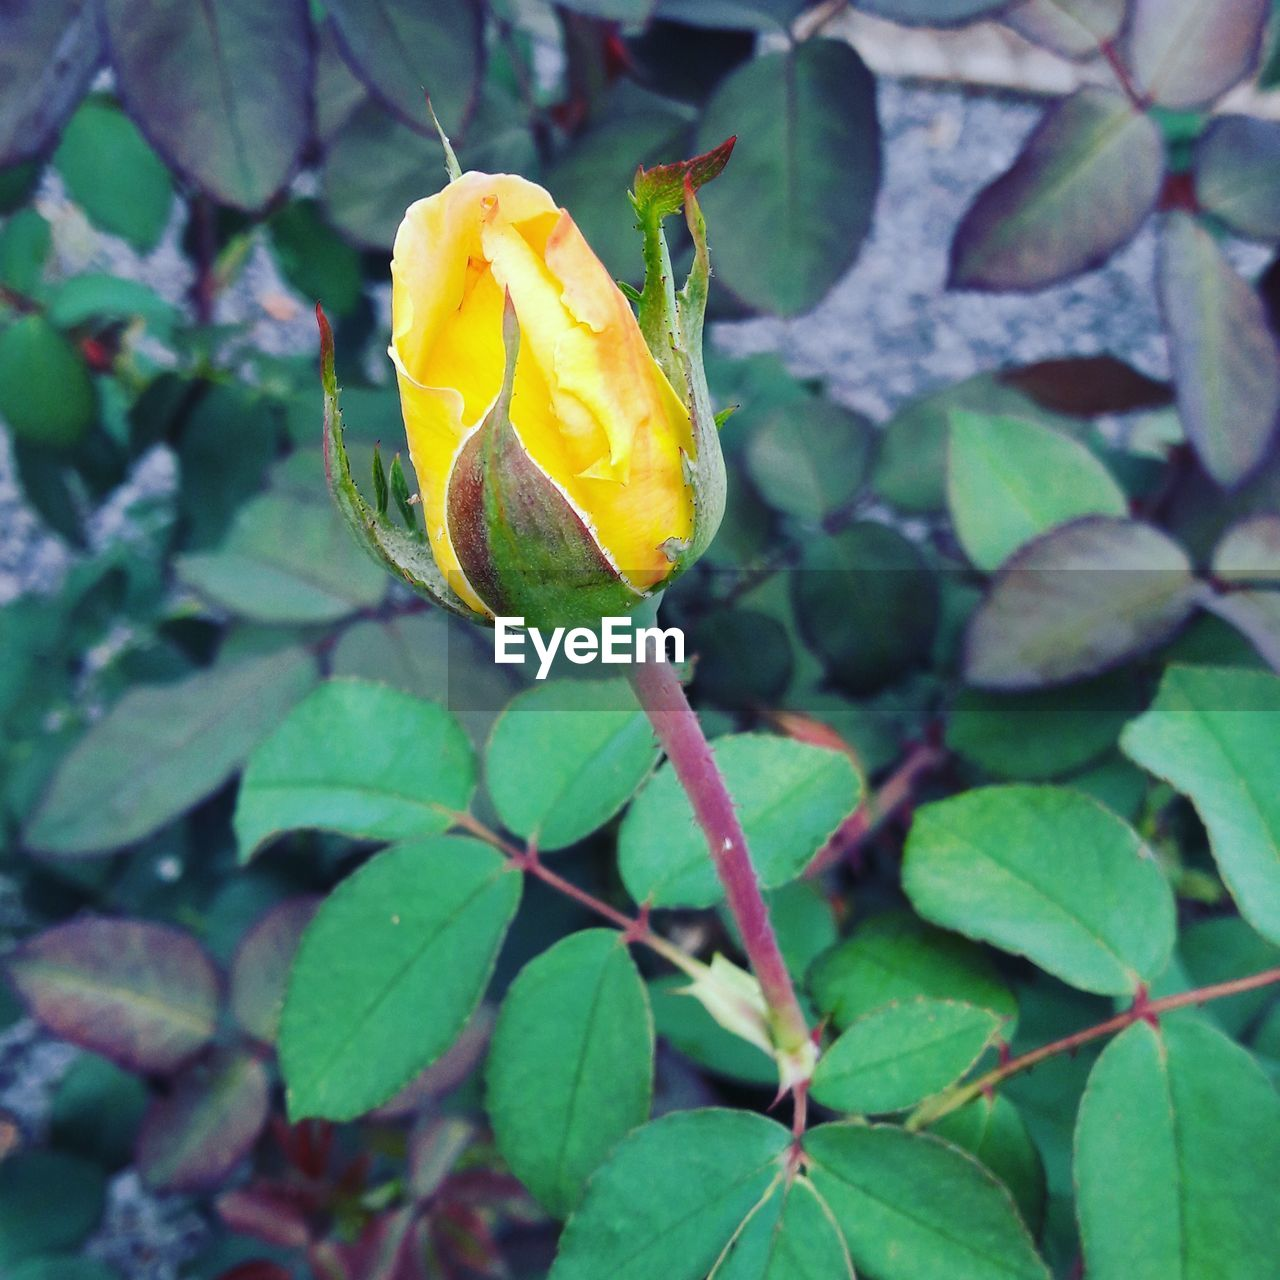 flower, nature, beauty in nature, fragility, leaf, plant, freshness, growth, petal, yellow, rose - flower, flower head, outdoors, close-up, day, drop, no people, green color, blooming, water